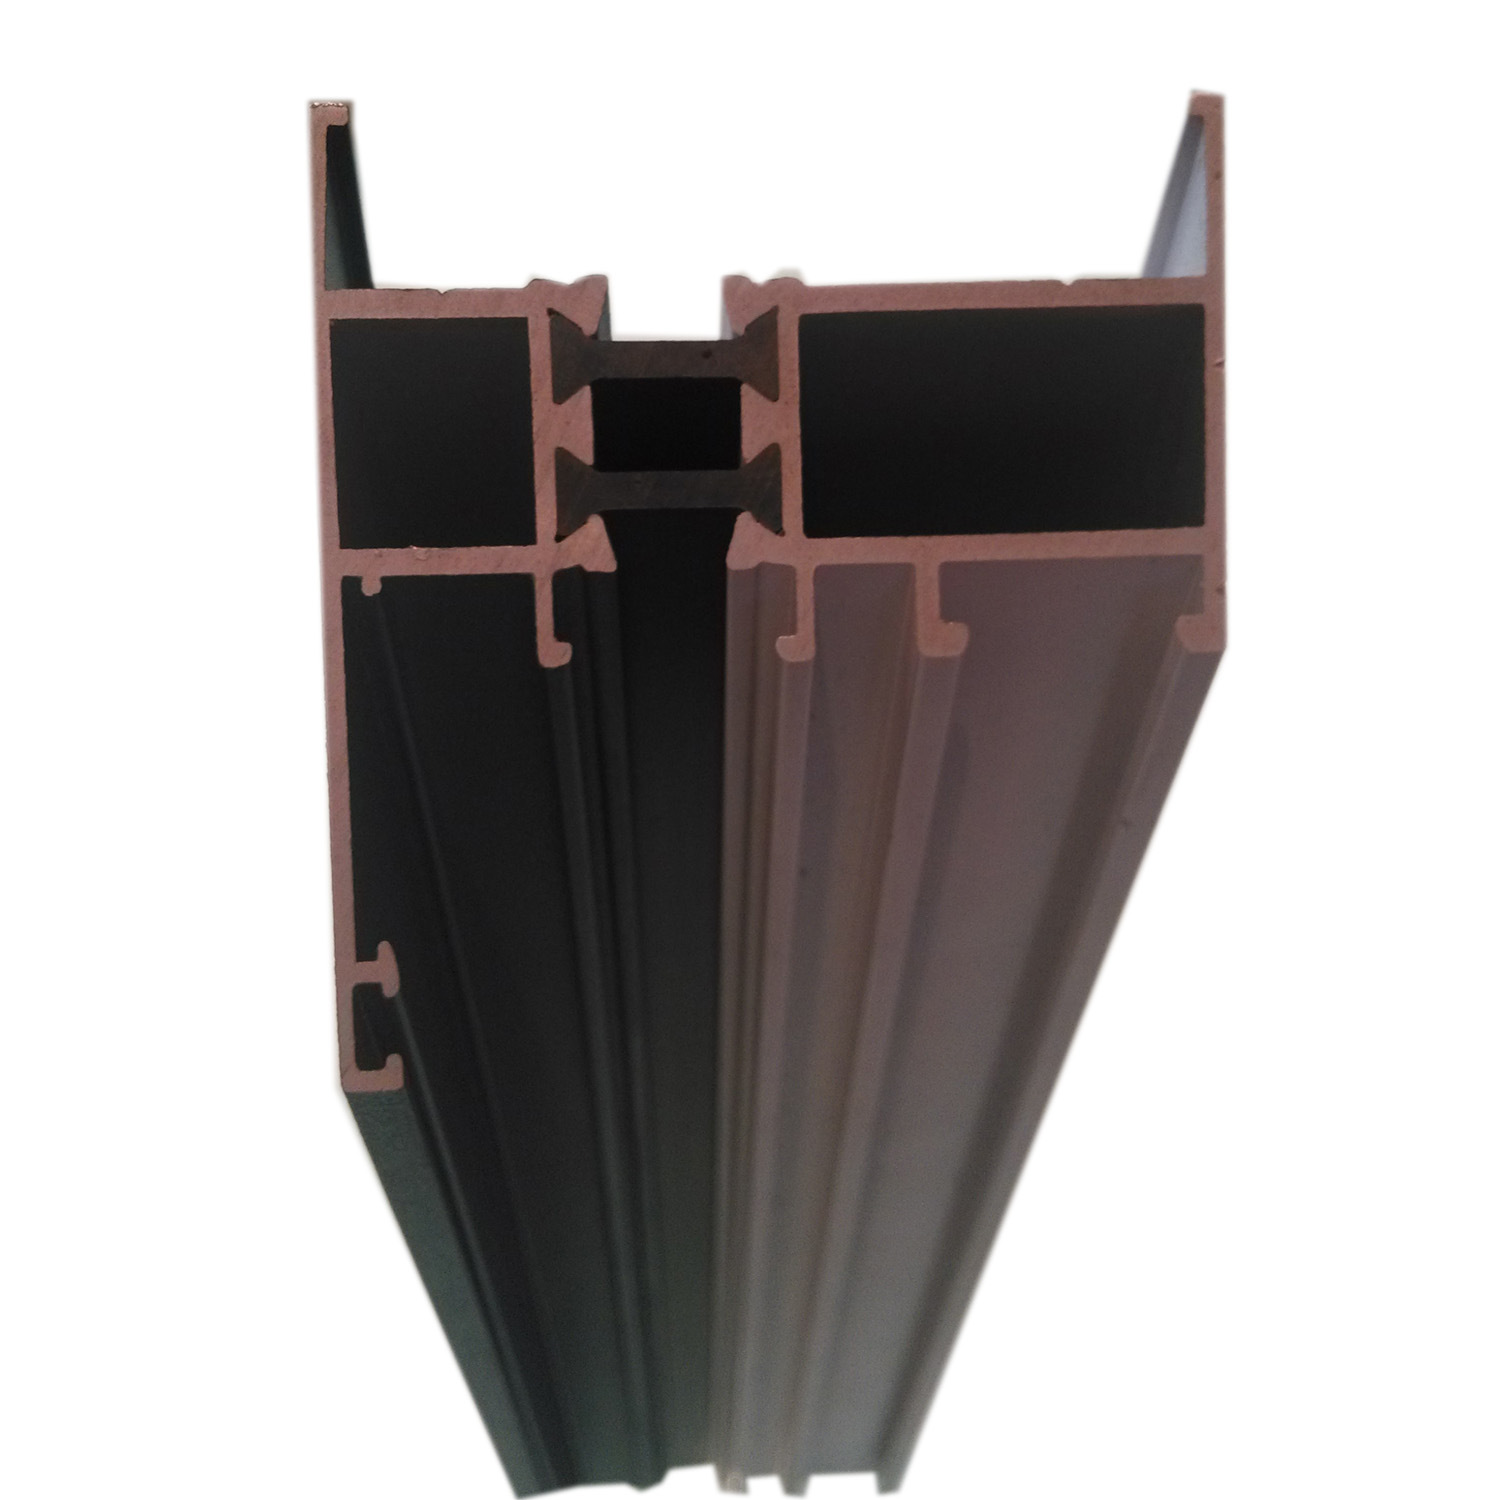 Powder Coating Green 6063 T5 Aluminum Extrusion Profile Aluminium Profile for Windows Doors Industry OEM